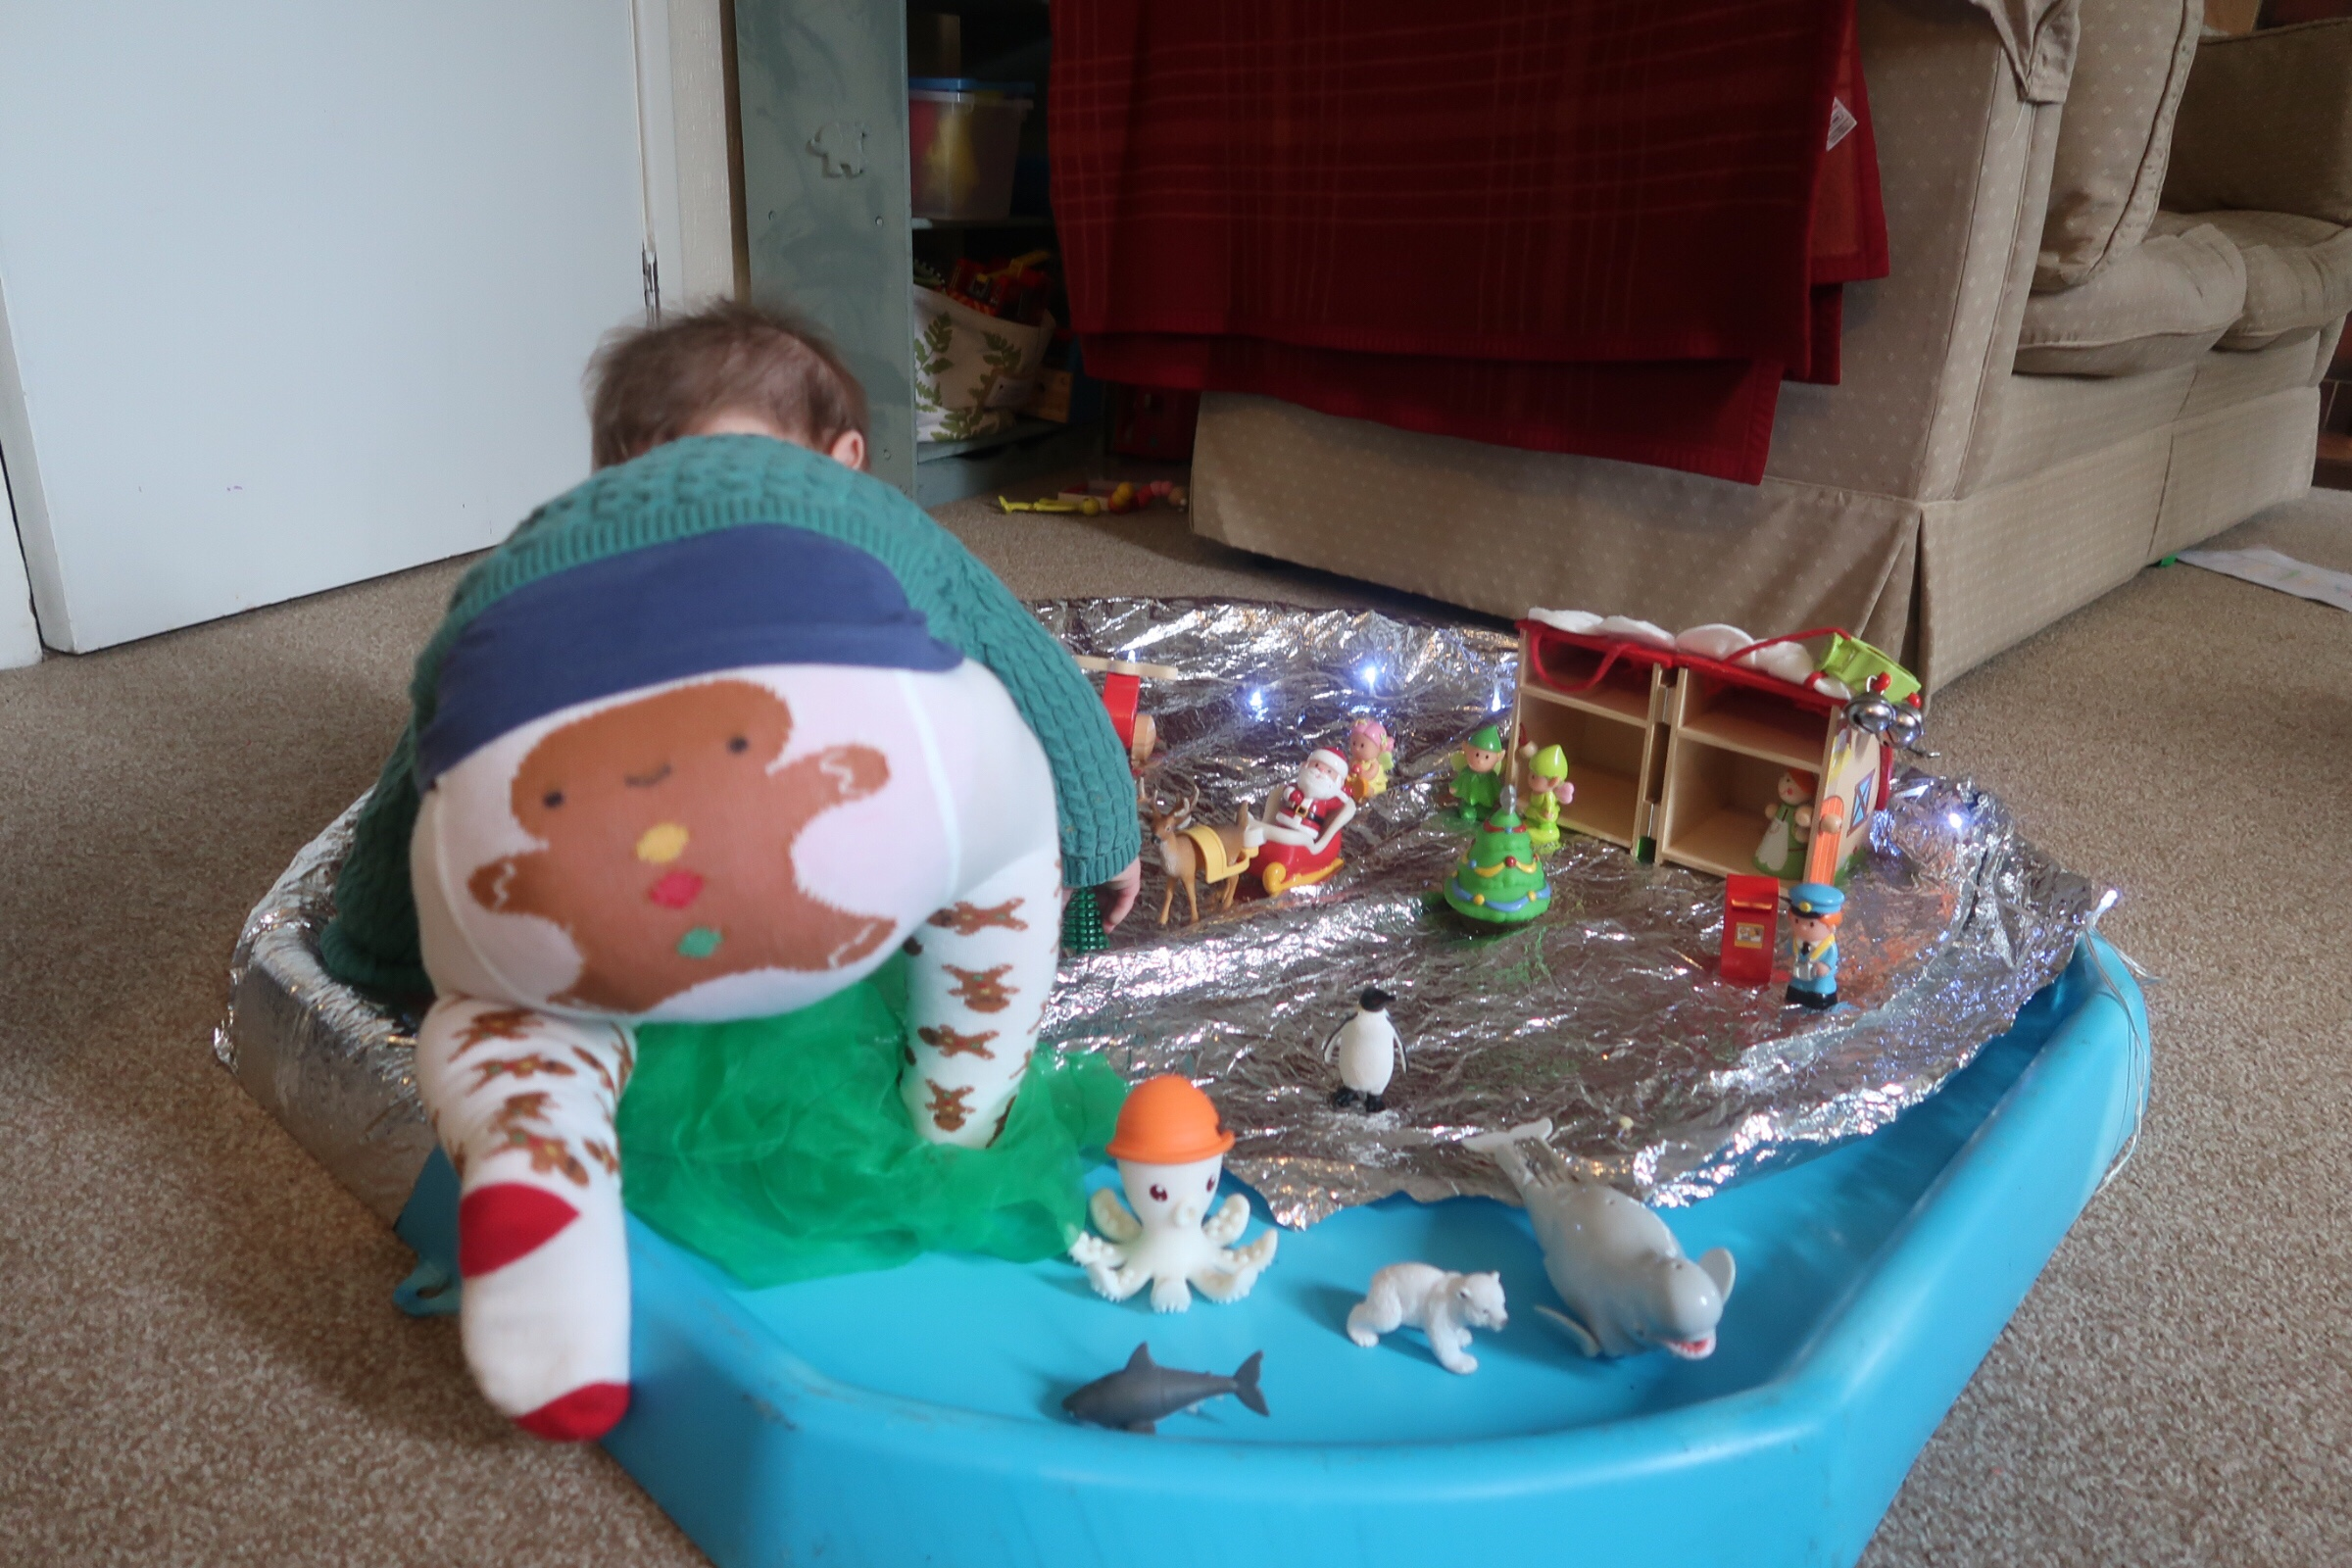 baby playing with small world in a tuff tray.